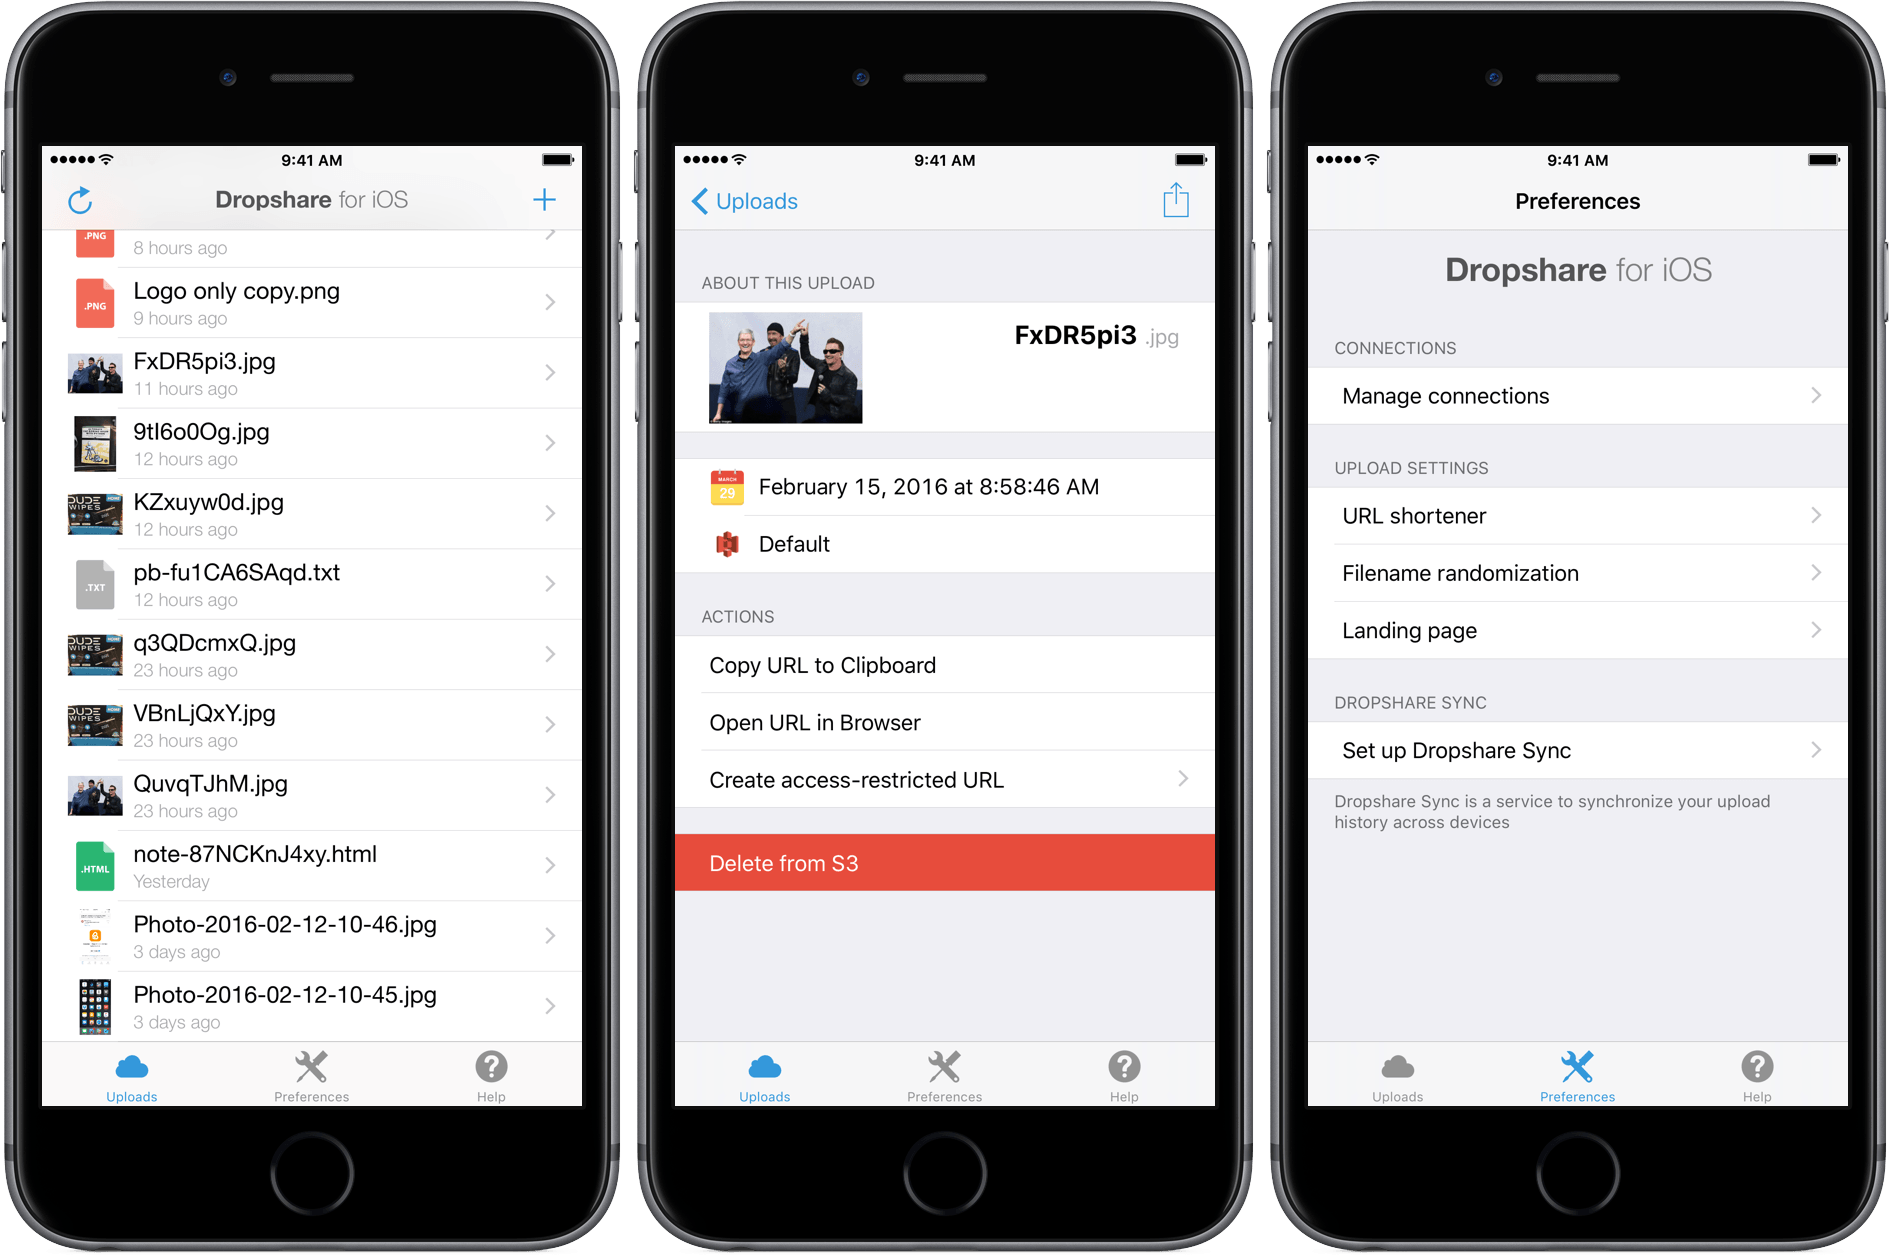 Dropshare for iOS.